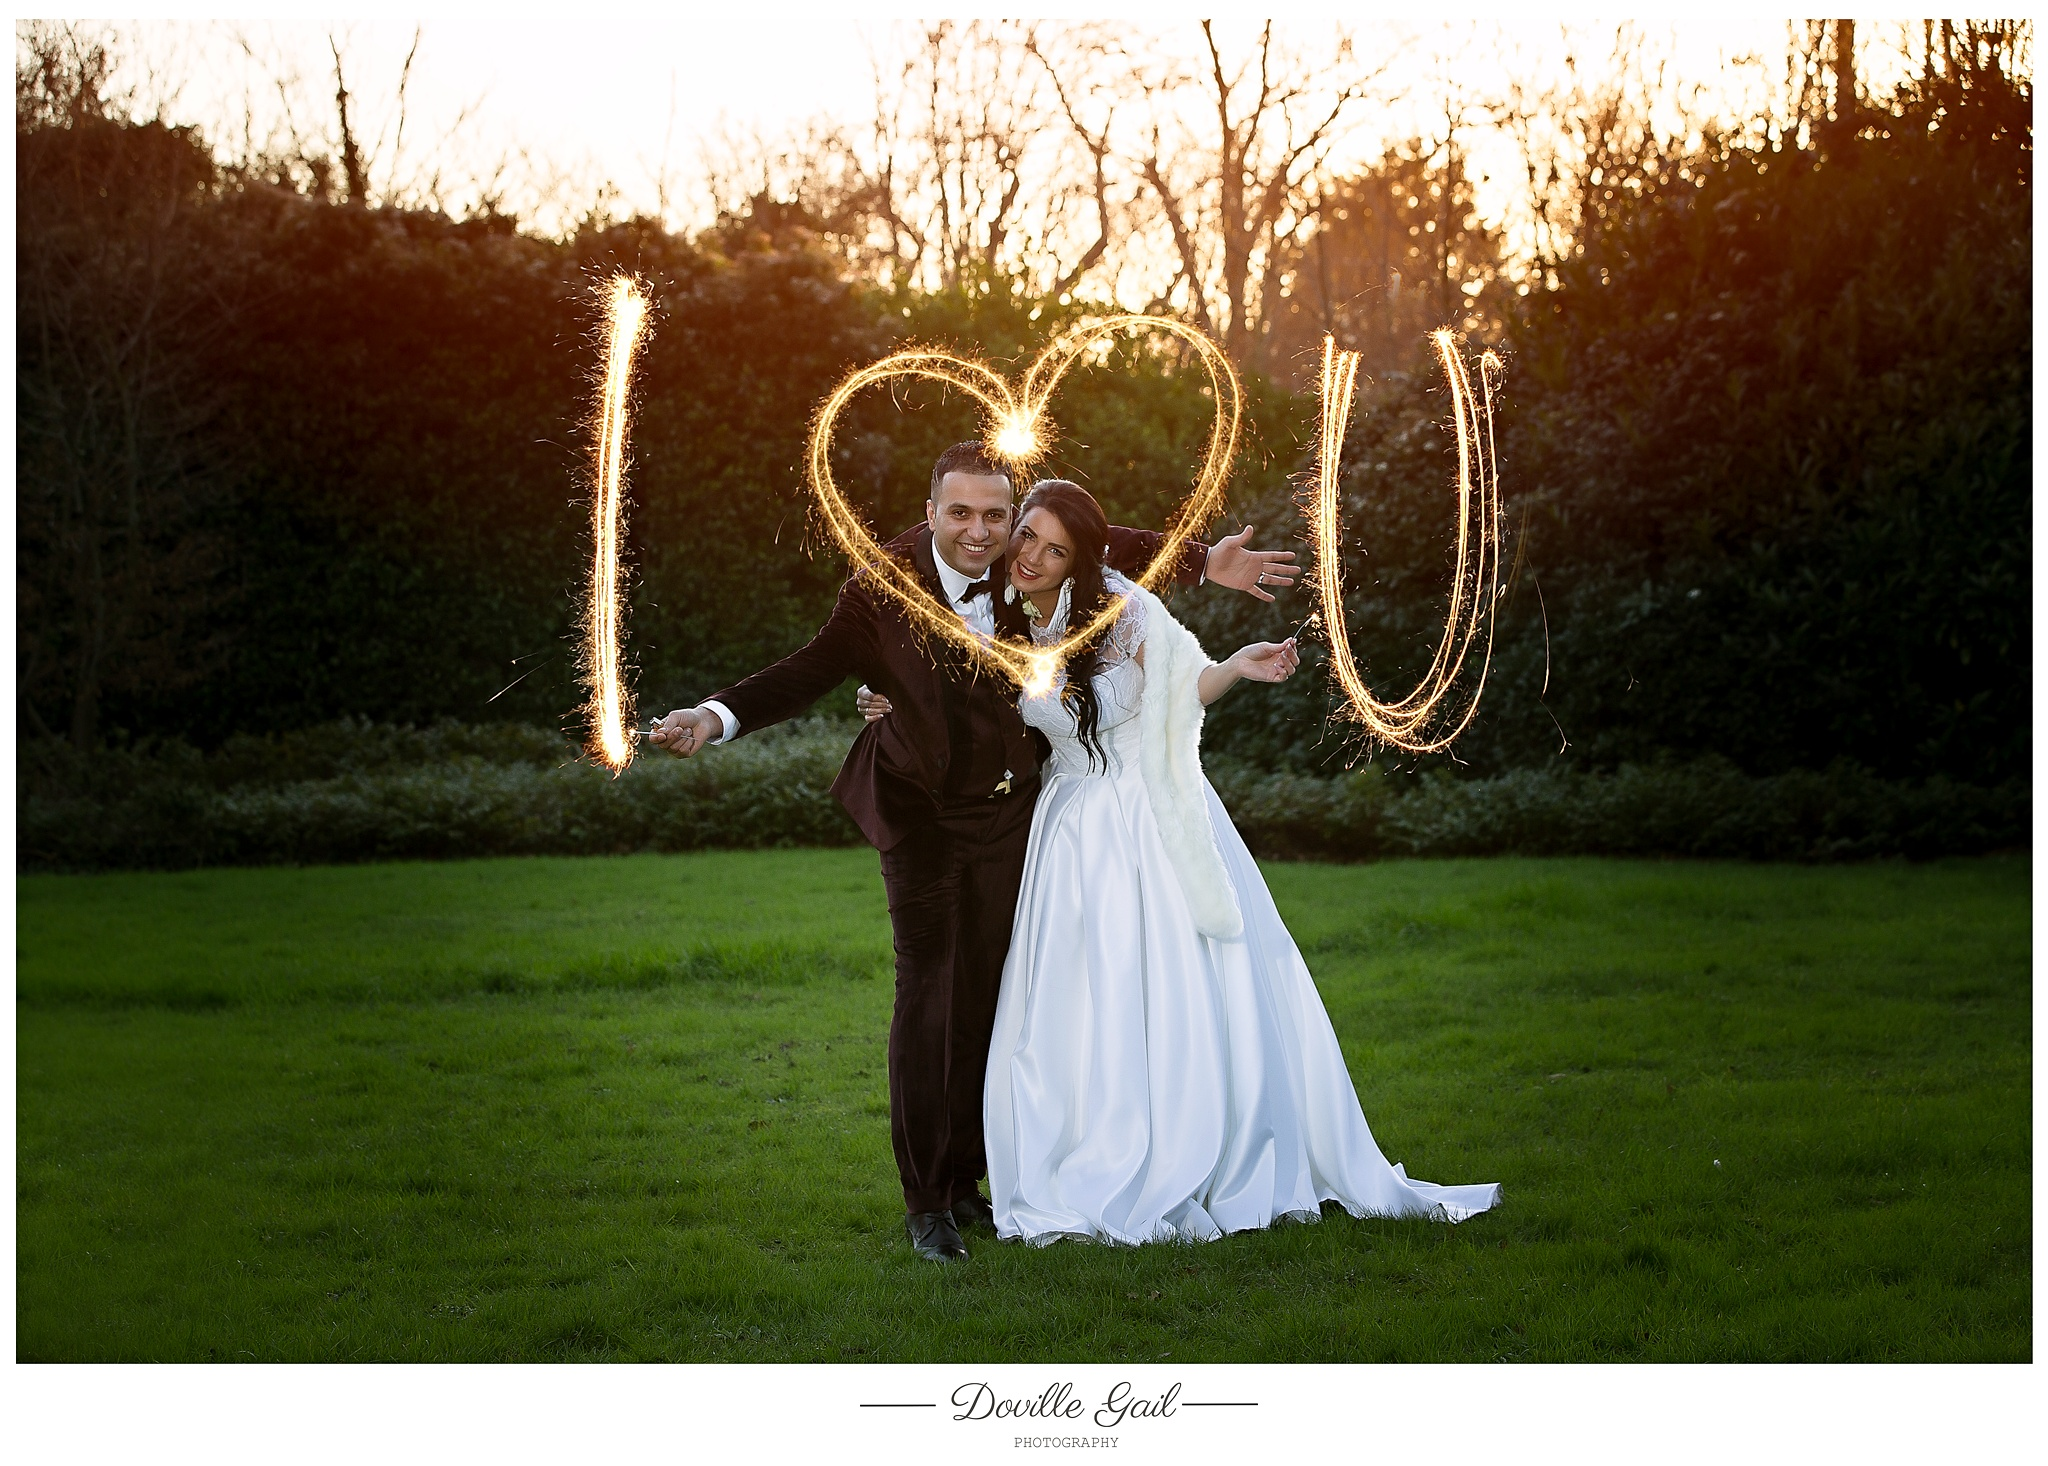 wedding photographer - Doville Gail by doville